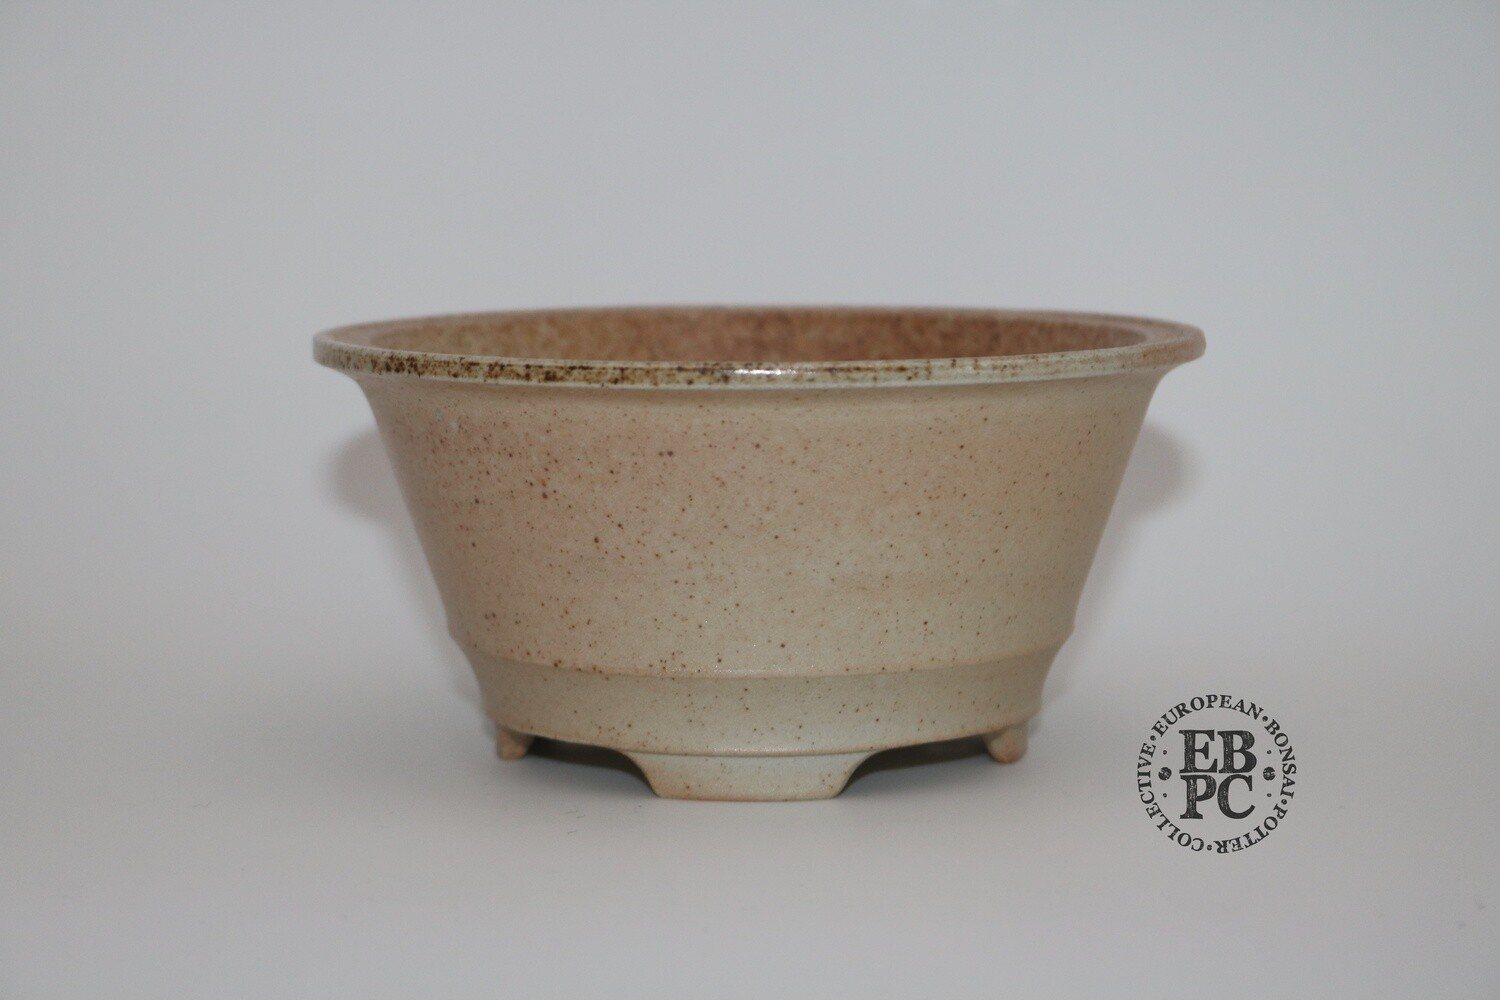 SOLD - Gramming Pots - 13.1cm; 'Supreme Simplicity; Round; Unglazed; White; Light Brown; Wood-fired; Recessed feet; Tomas Gramming